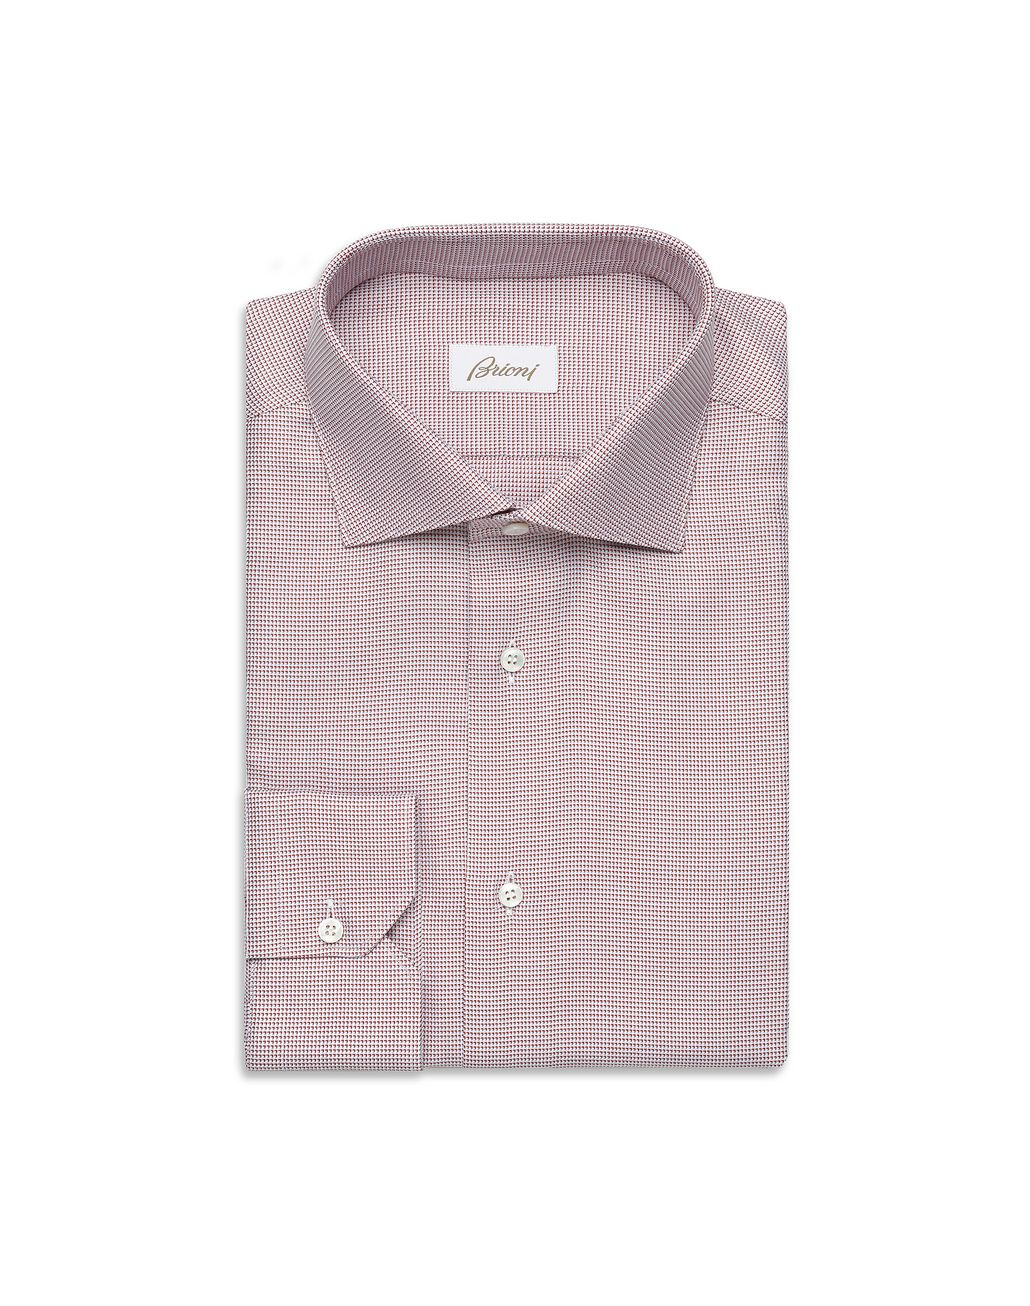 BRIONI Bordeaux and White Micro -Designed Formal Shirt Formal shirt [*** pickupInStoreShippingNotGuaranteed_info ***] f